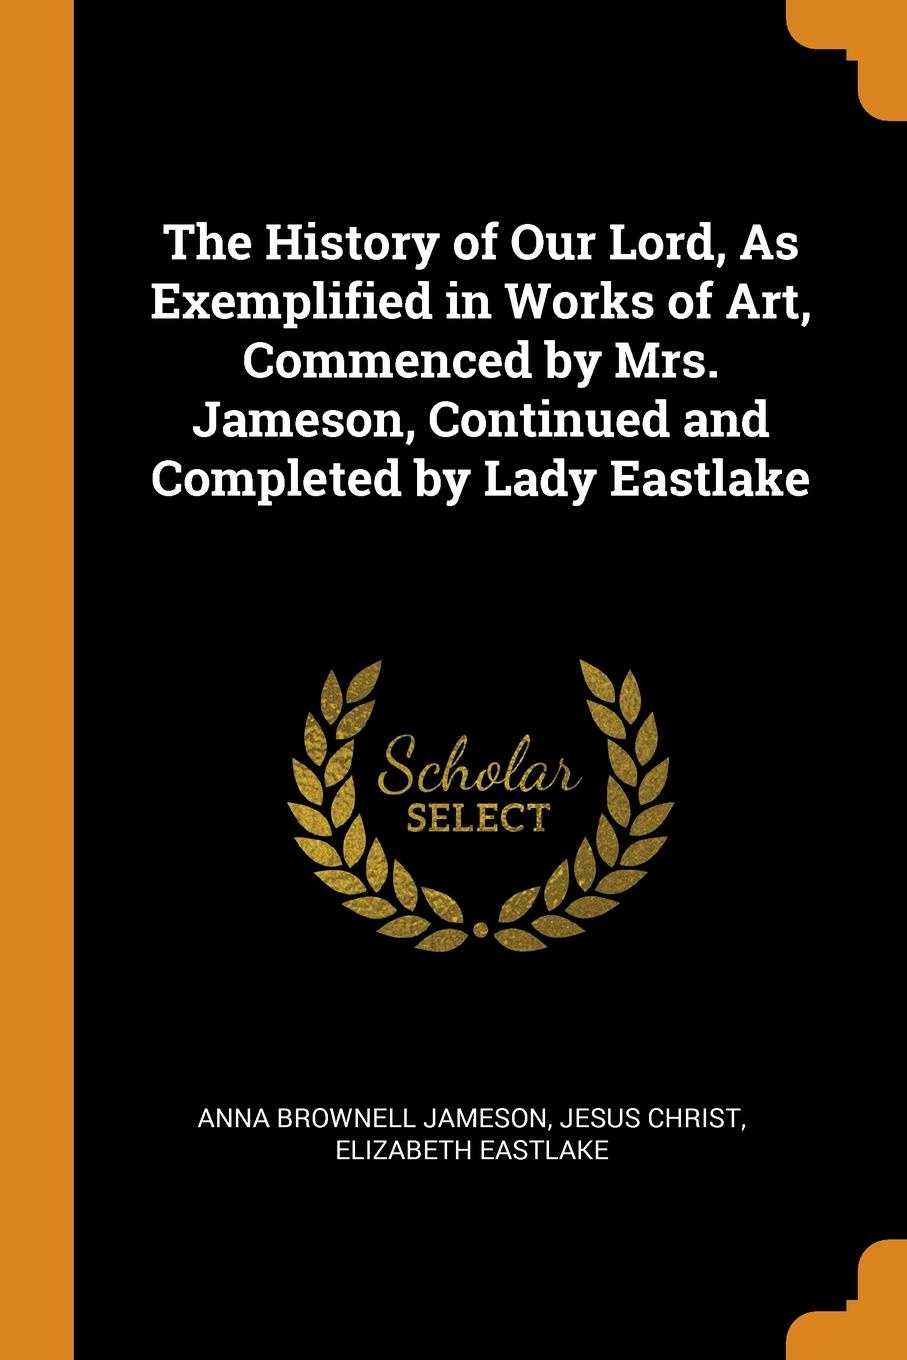 Anna Brownell Jameson, Jesus Christ, Elizabeth Eastlake The History of Our Lord, As Exemplified in Works of Art, Commenced by Mrs. Jameson, Continued and Completed by Lady Eastlake